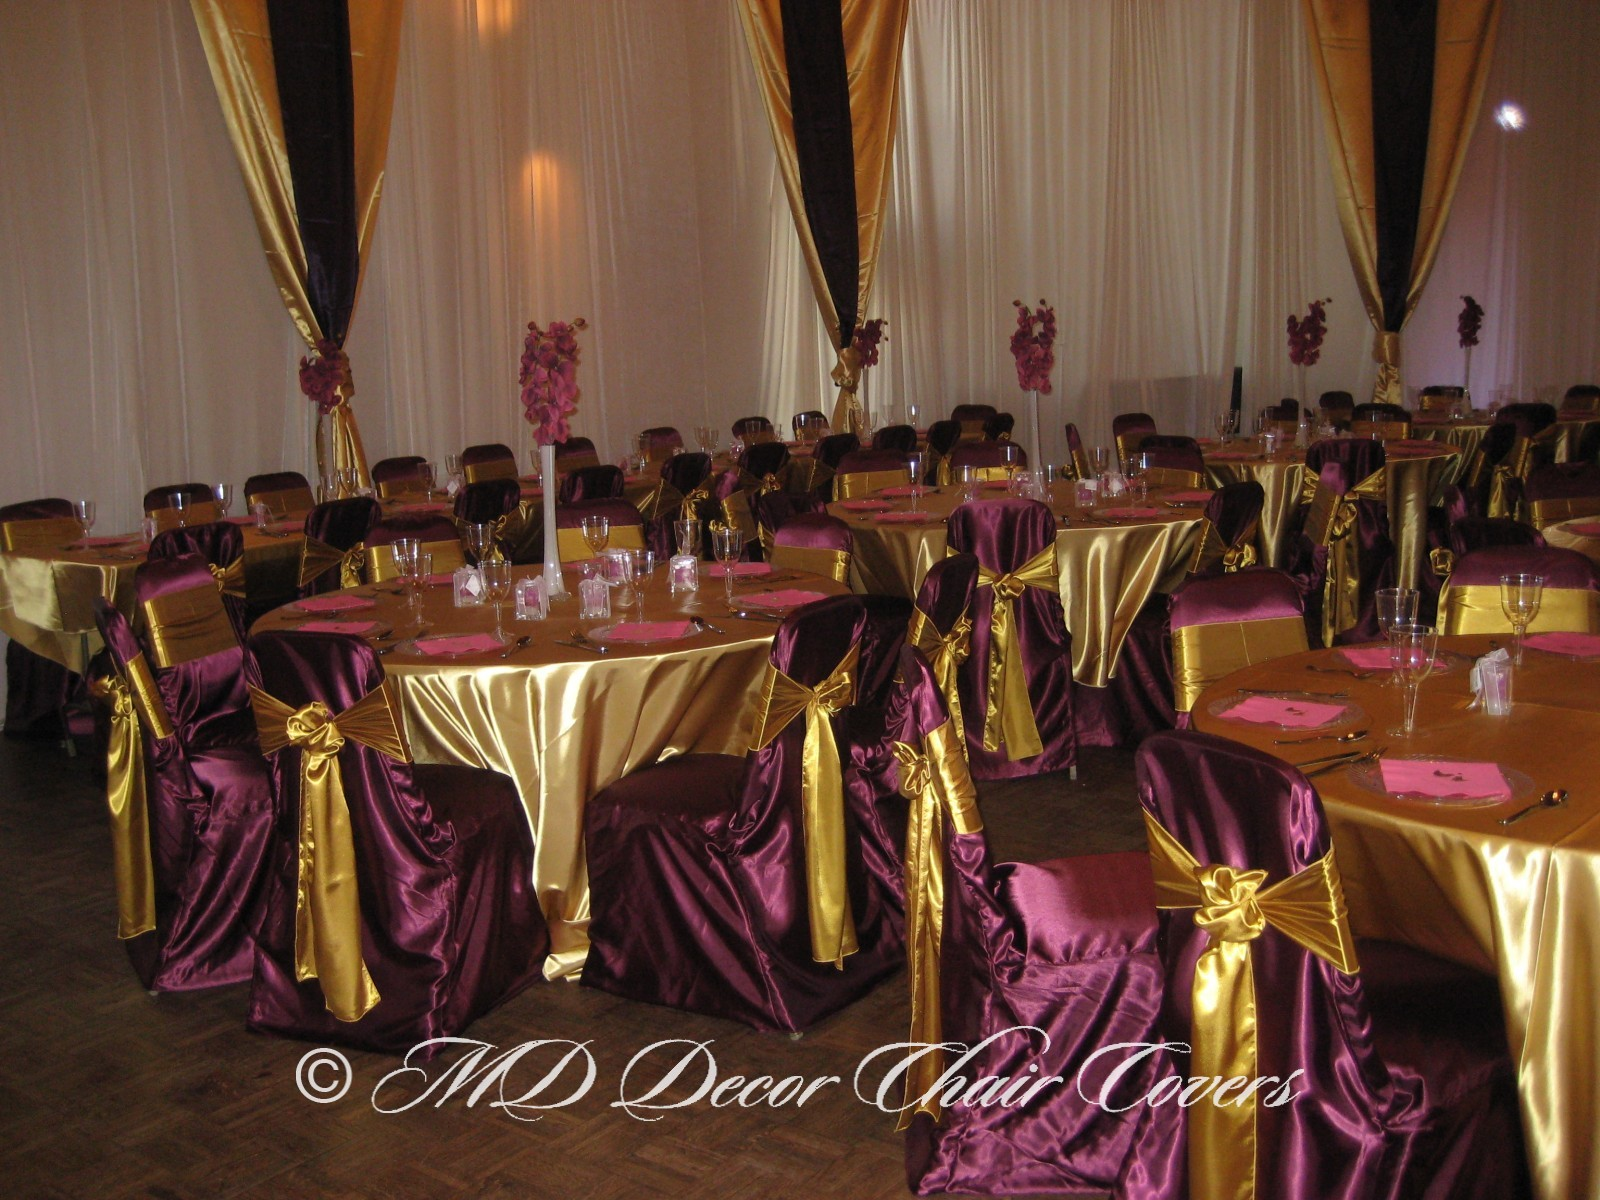 Gold satin lamour linens with the Toscano wall covering